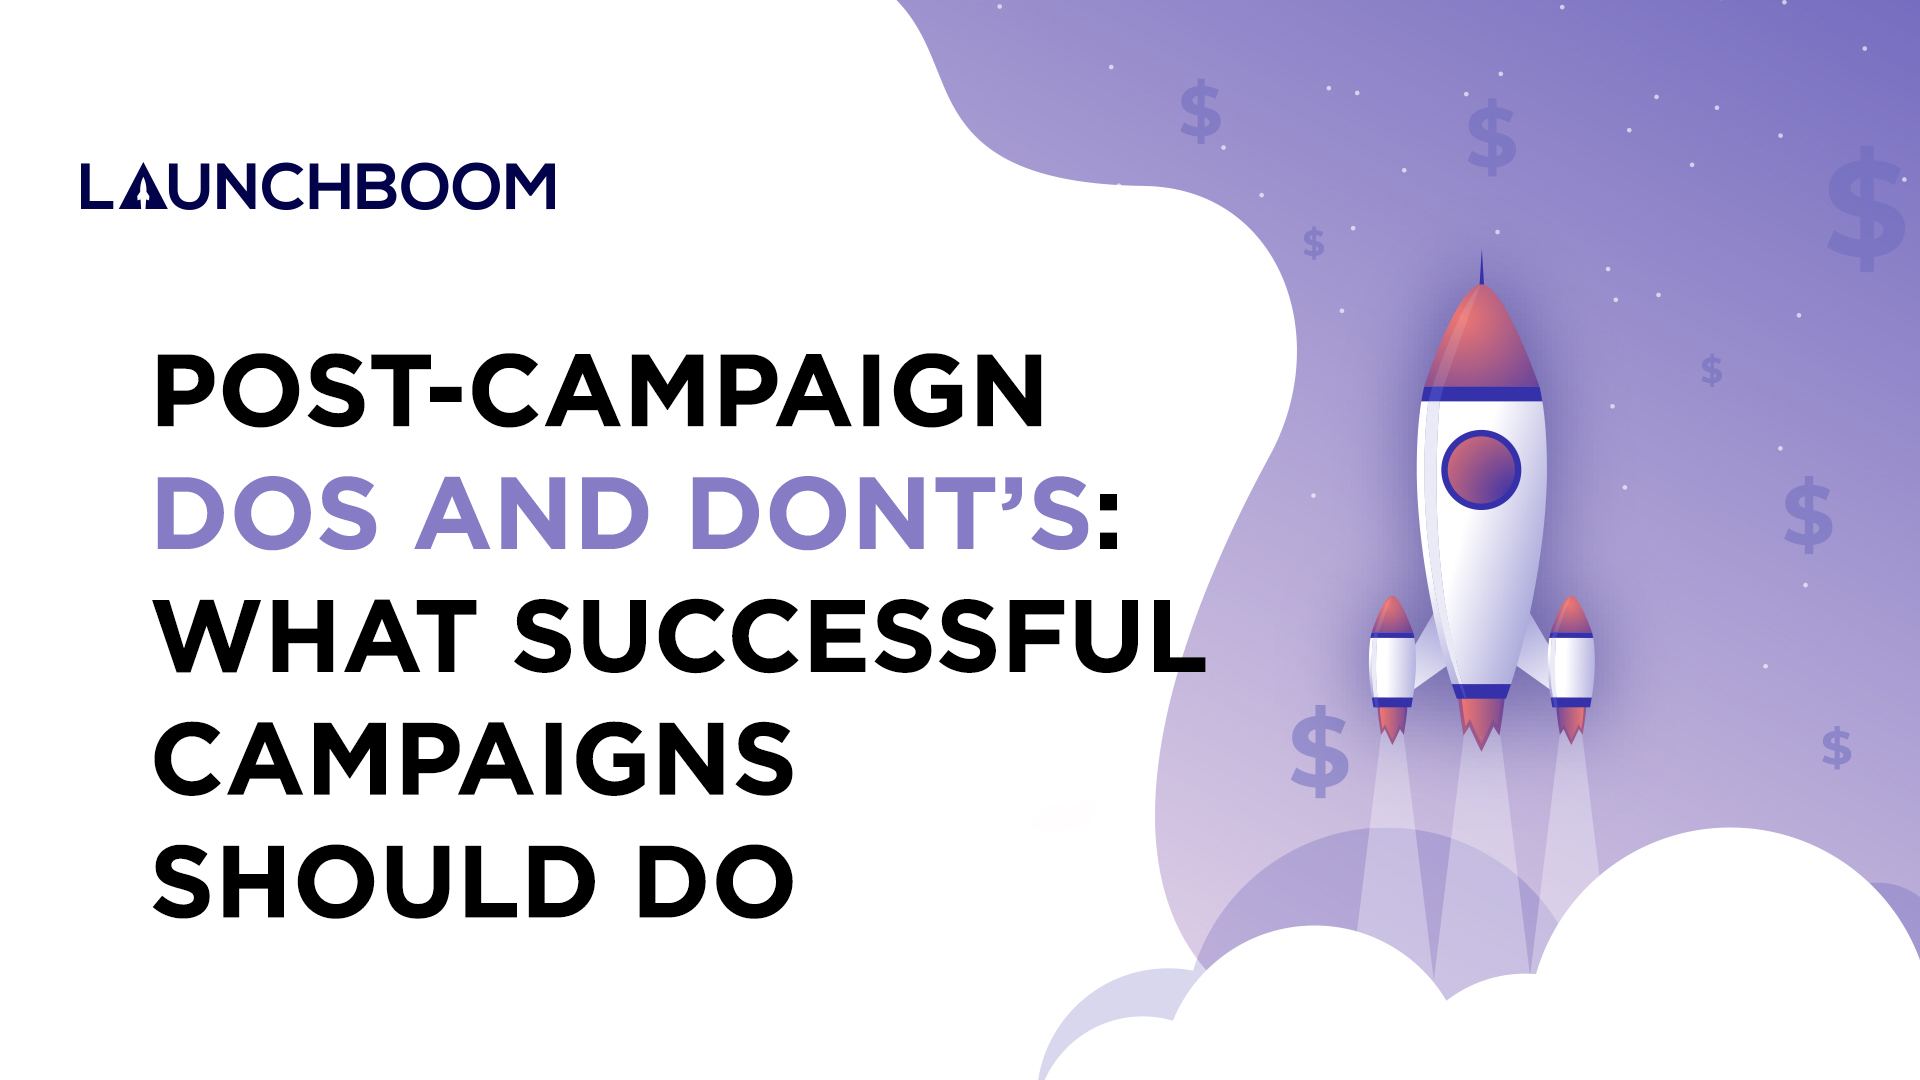 Post-campaign dos and don'ts: What successful campaigns should do